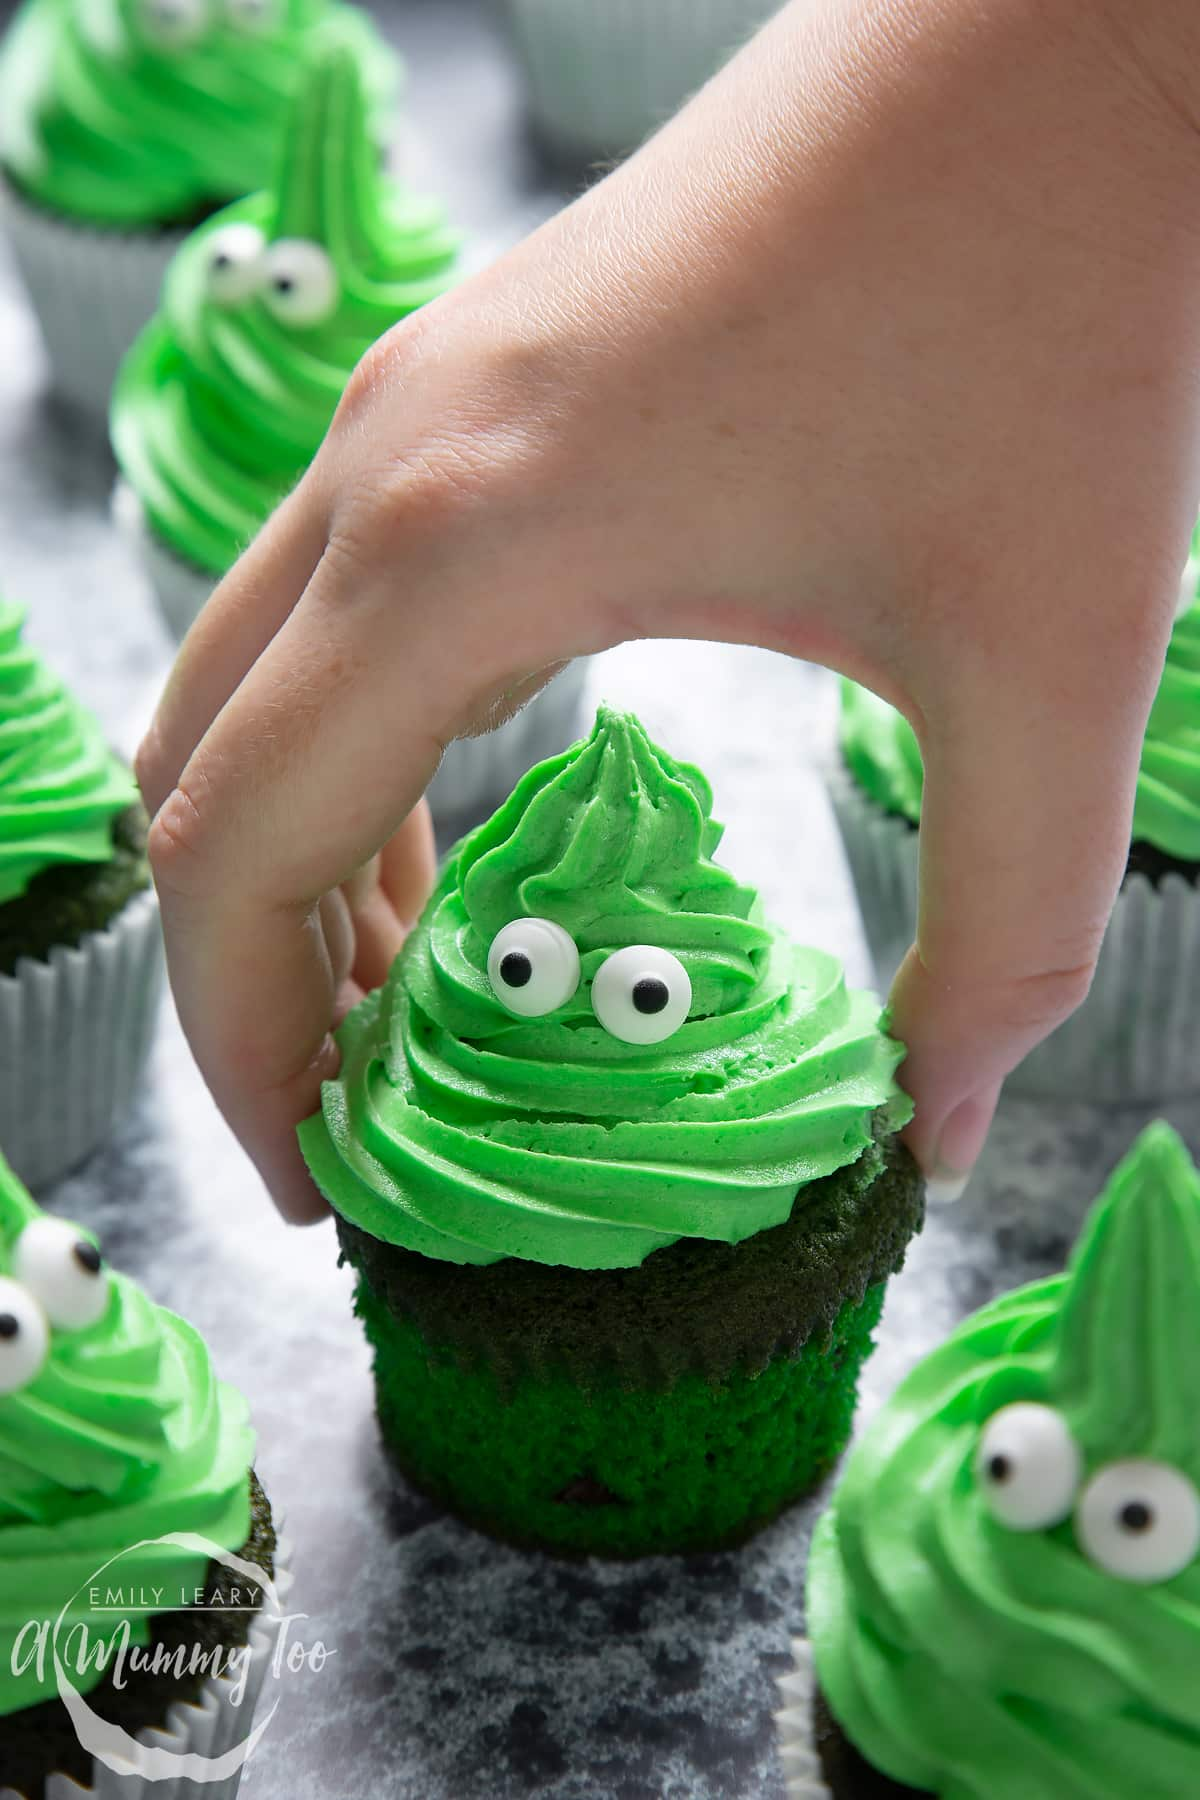 Green monster cakes made with dyed-green chocolate chip cupcakes topped with green peppermint frosting with added candy eyes. A hand reaches for one.